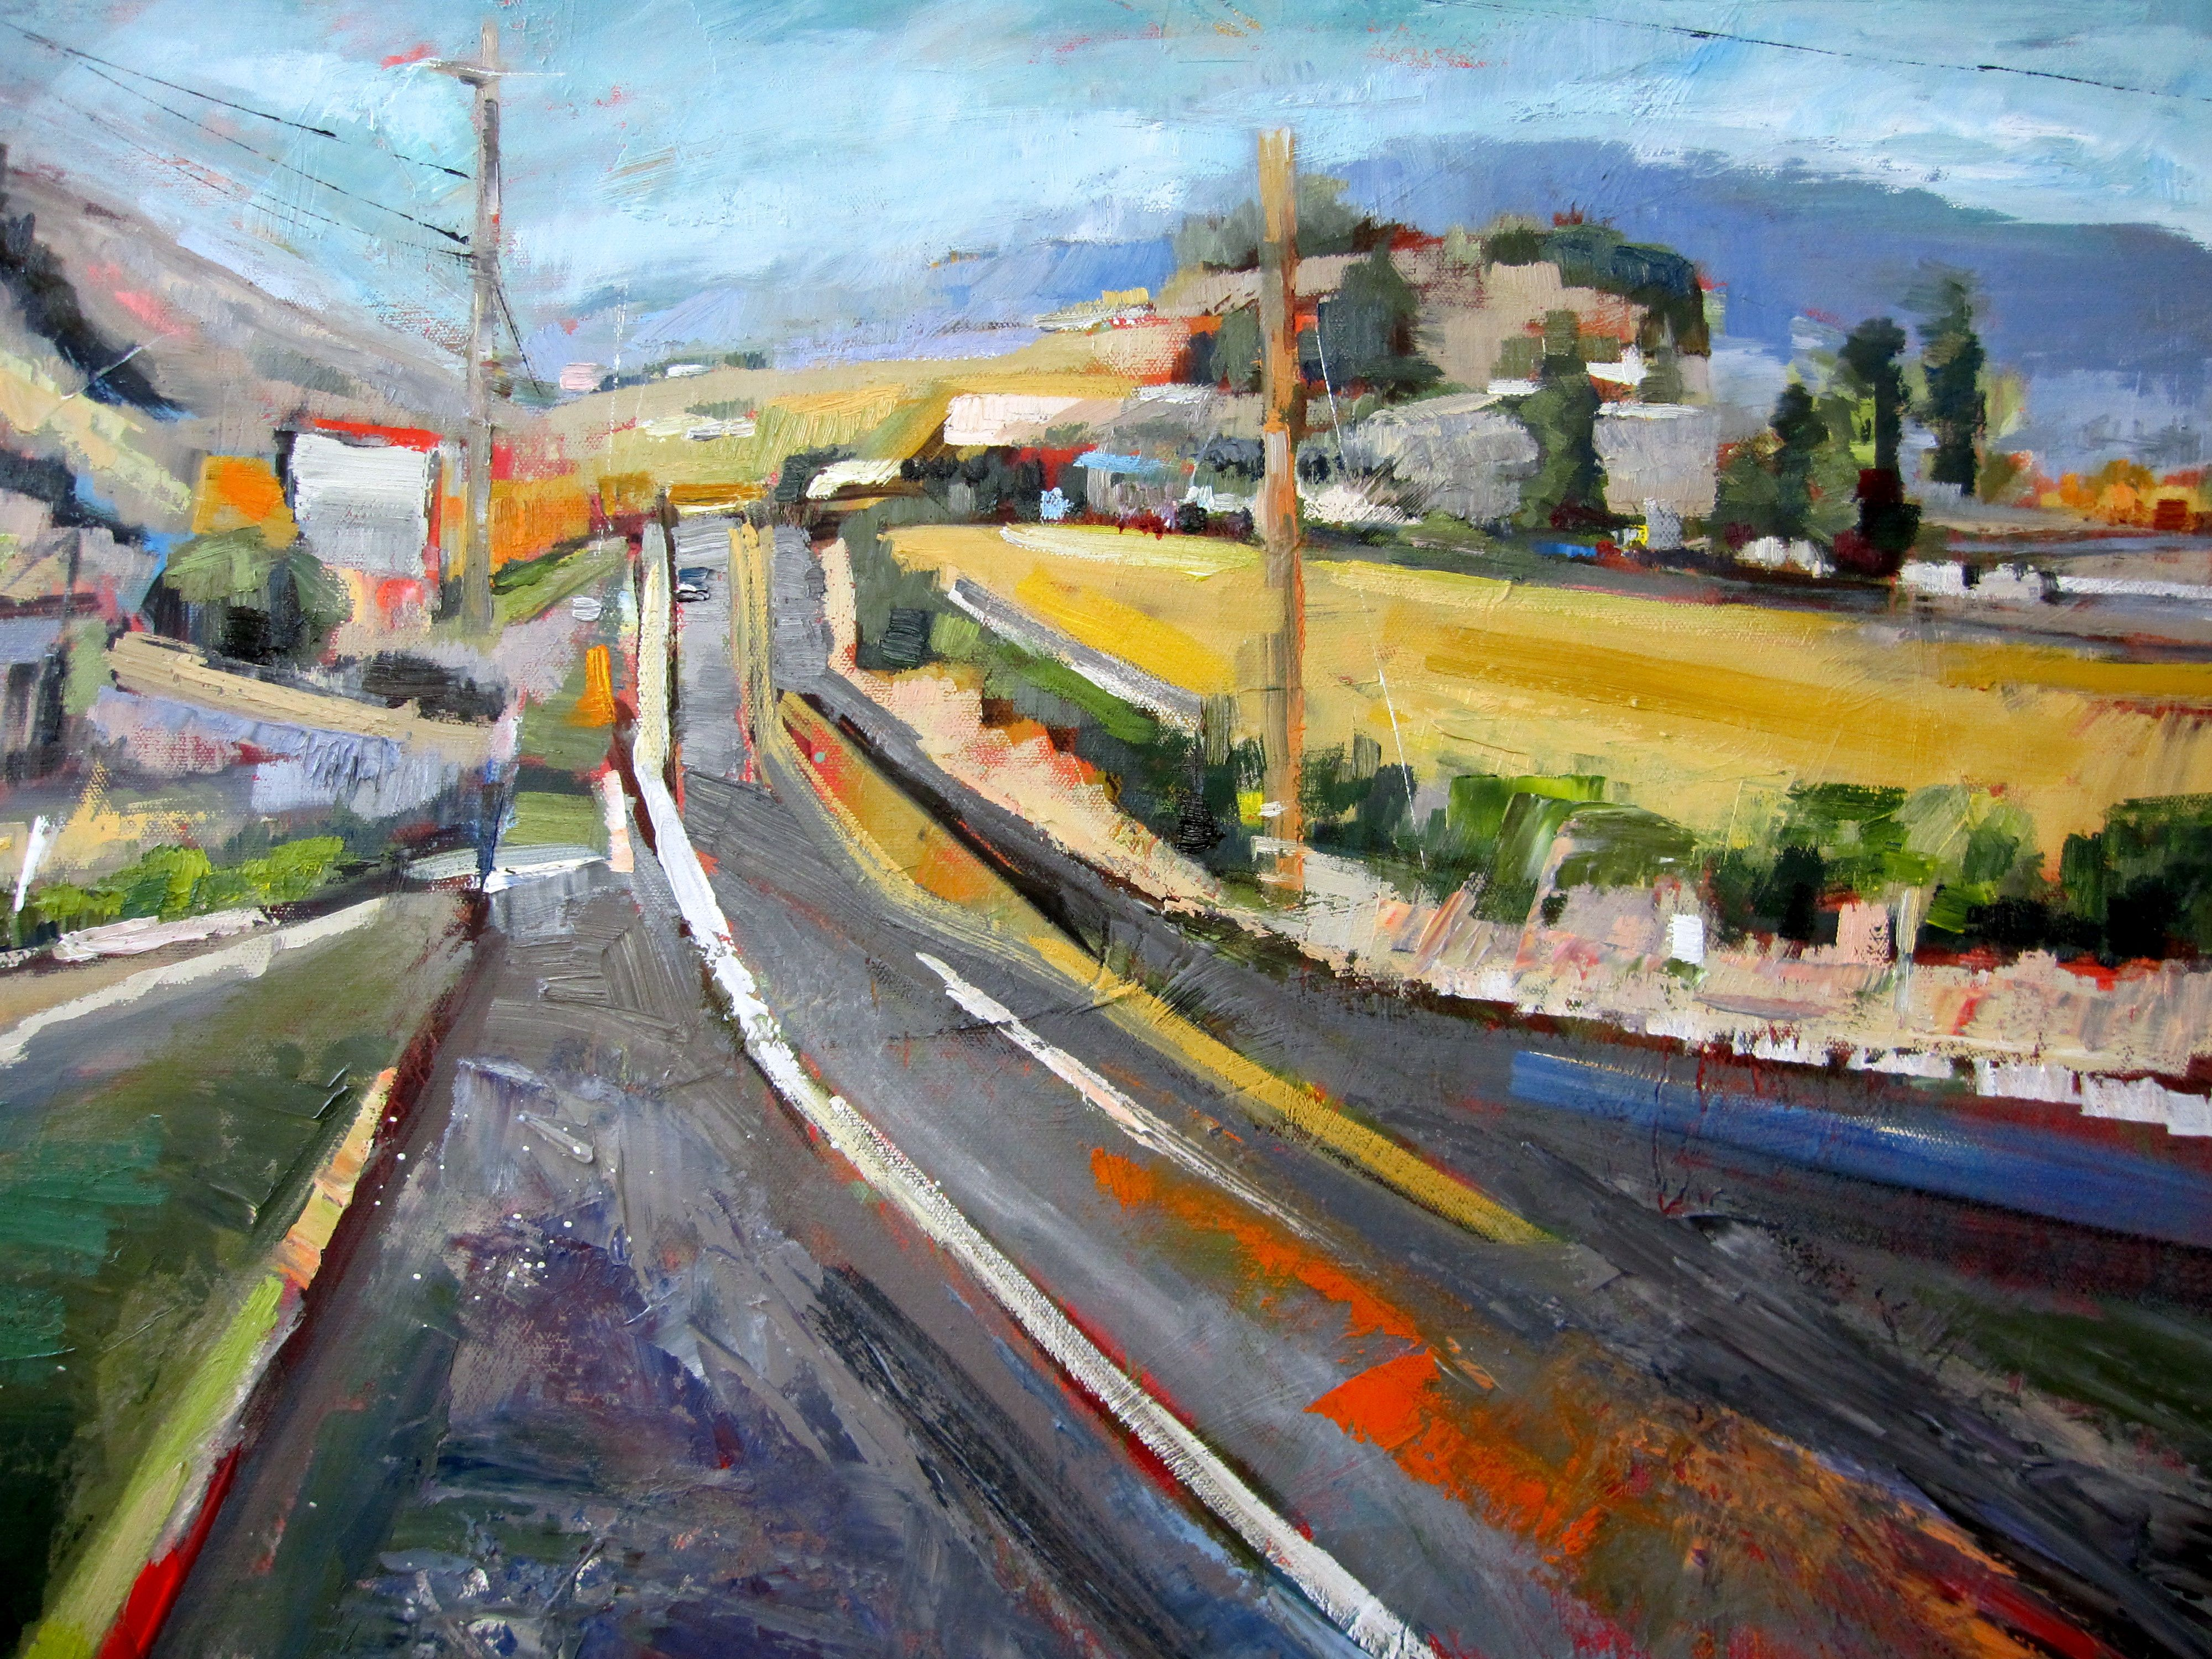 Abstract Landscape Painting Joy Ride 2 By Kim Ford Kitz Kimfordkitz Com Landscape Paintings Abstract Landscape Landscape